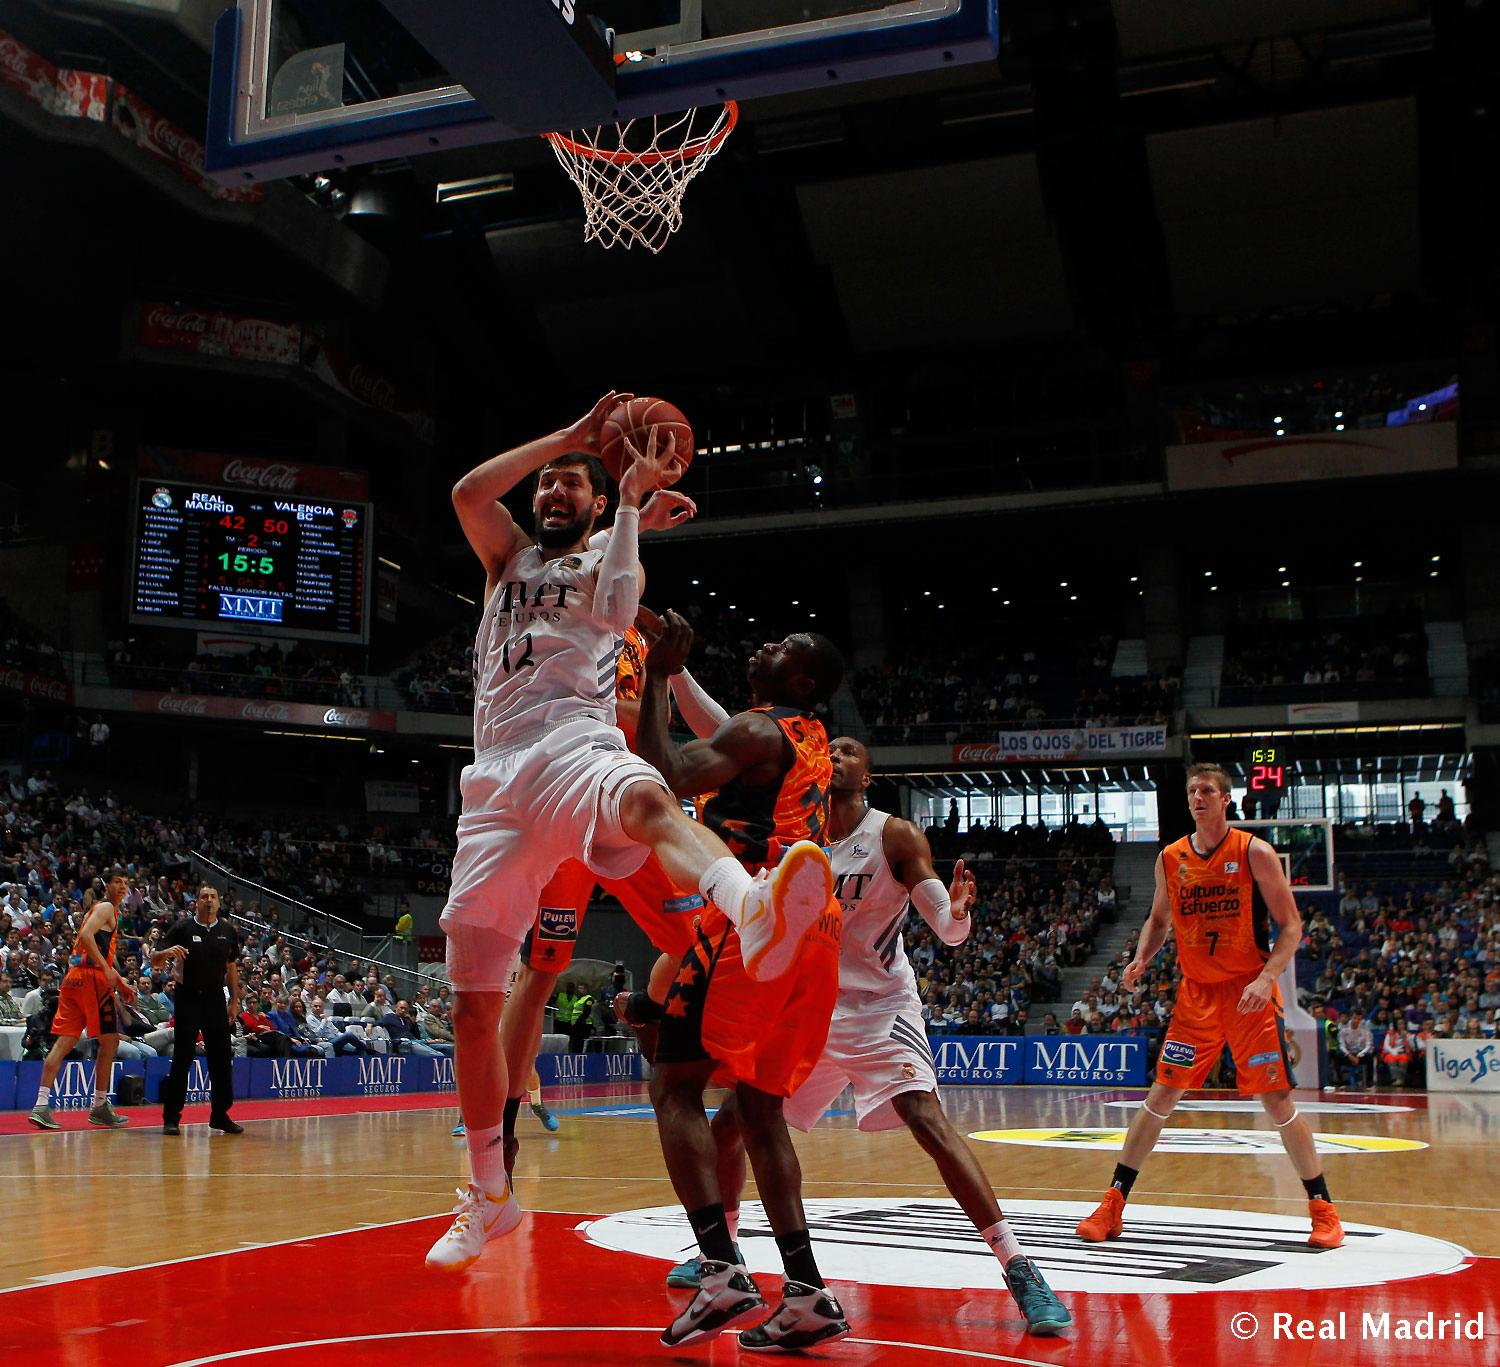 Real Madrid - Real Madrid - Valencia Basket - 27-04-2014